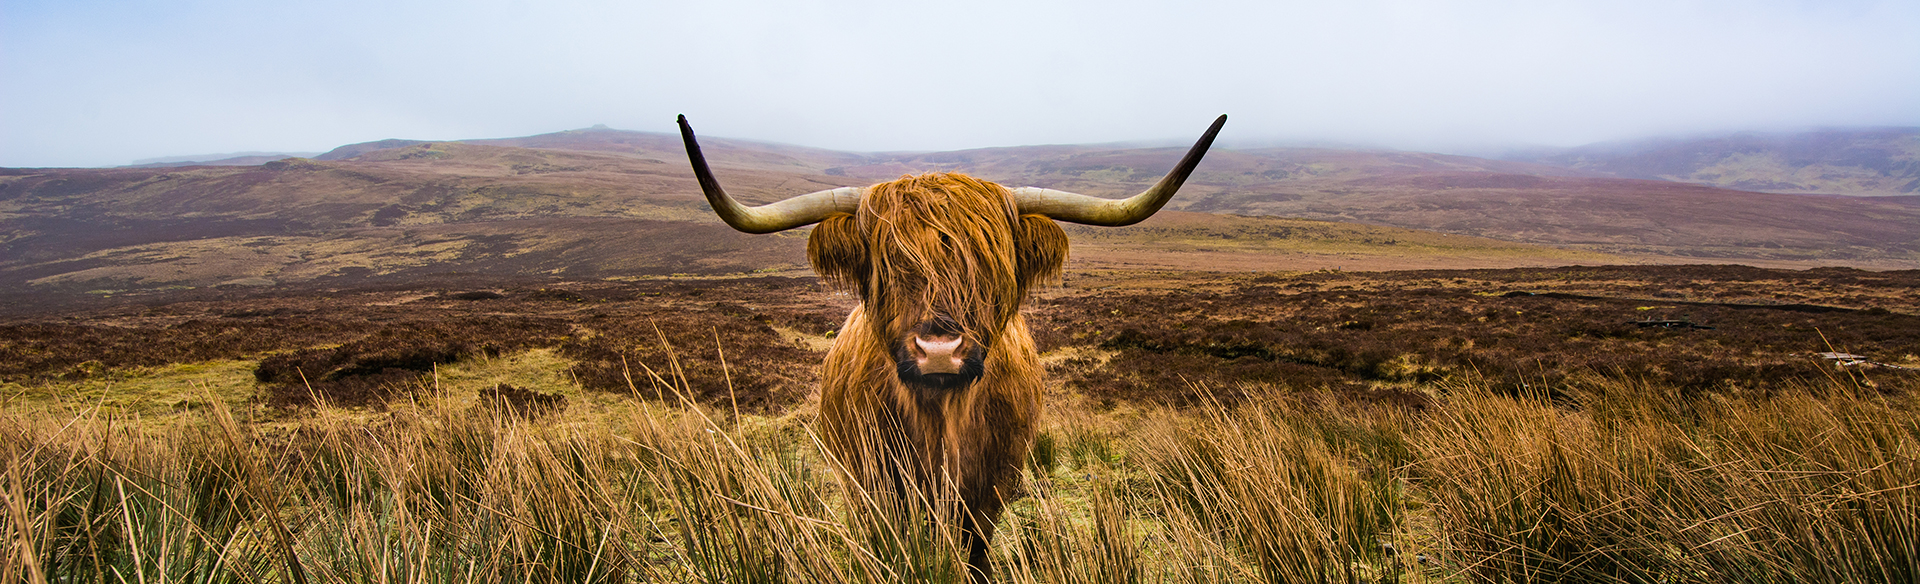 What is so special about HIghland cows?